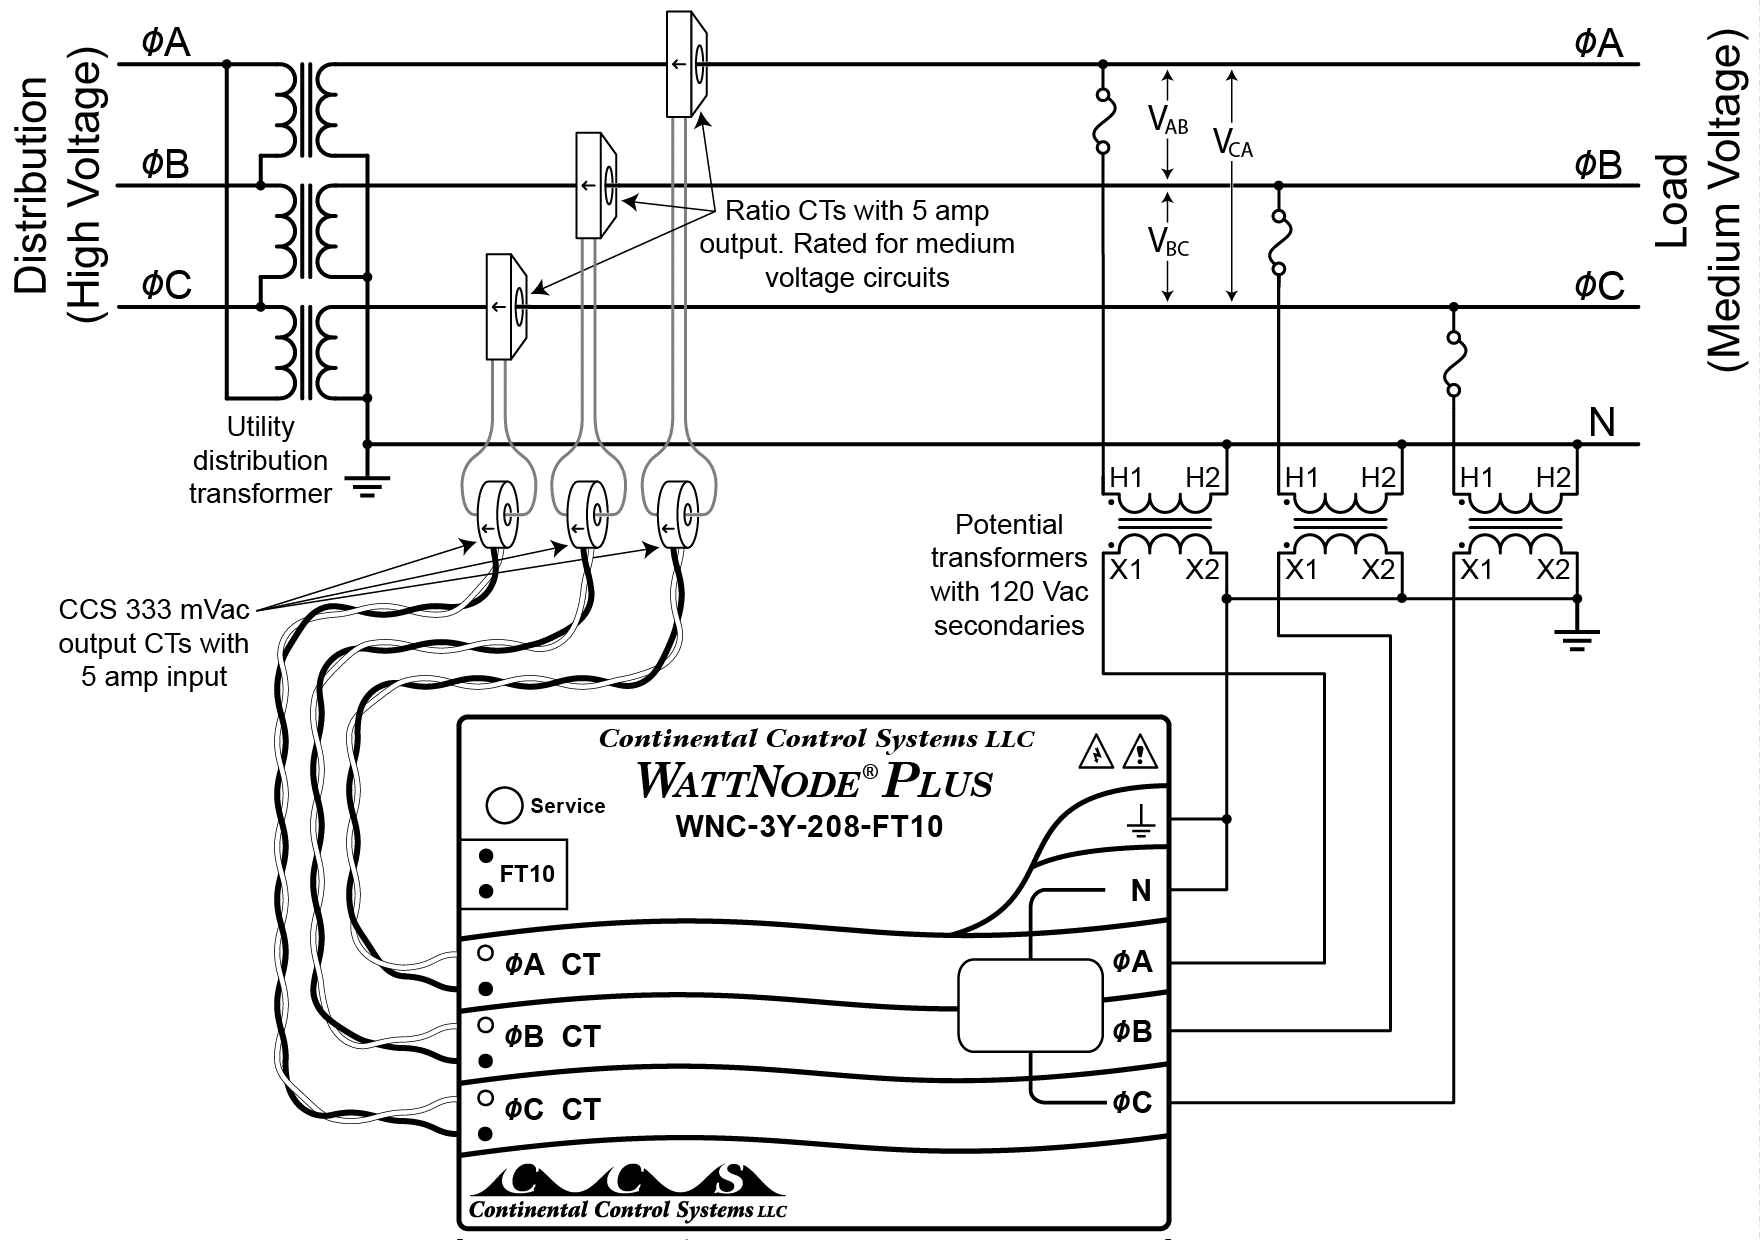 Ct Cabinet Wiring Diagram : 25 Wiring Diagram Images